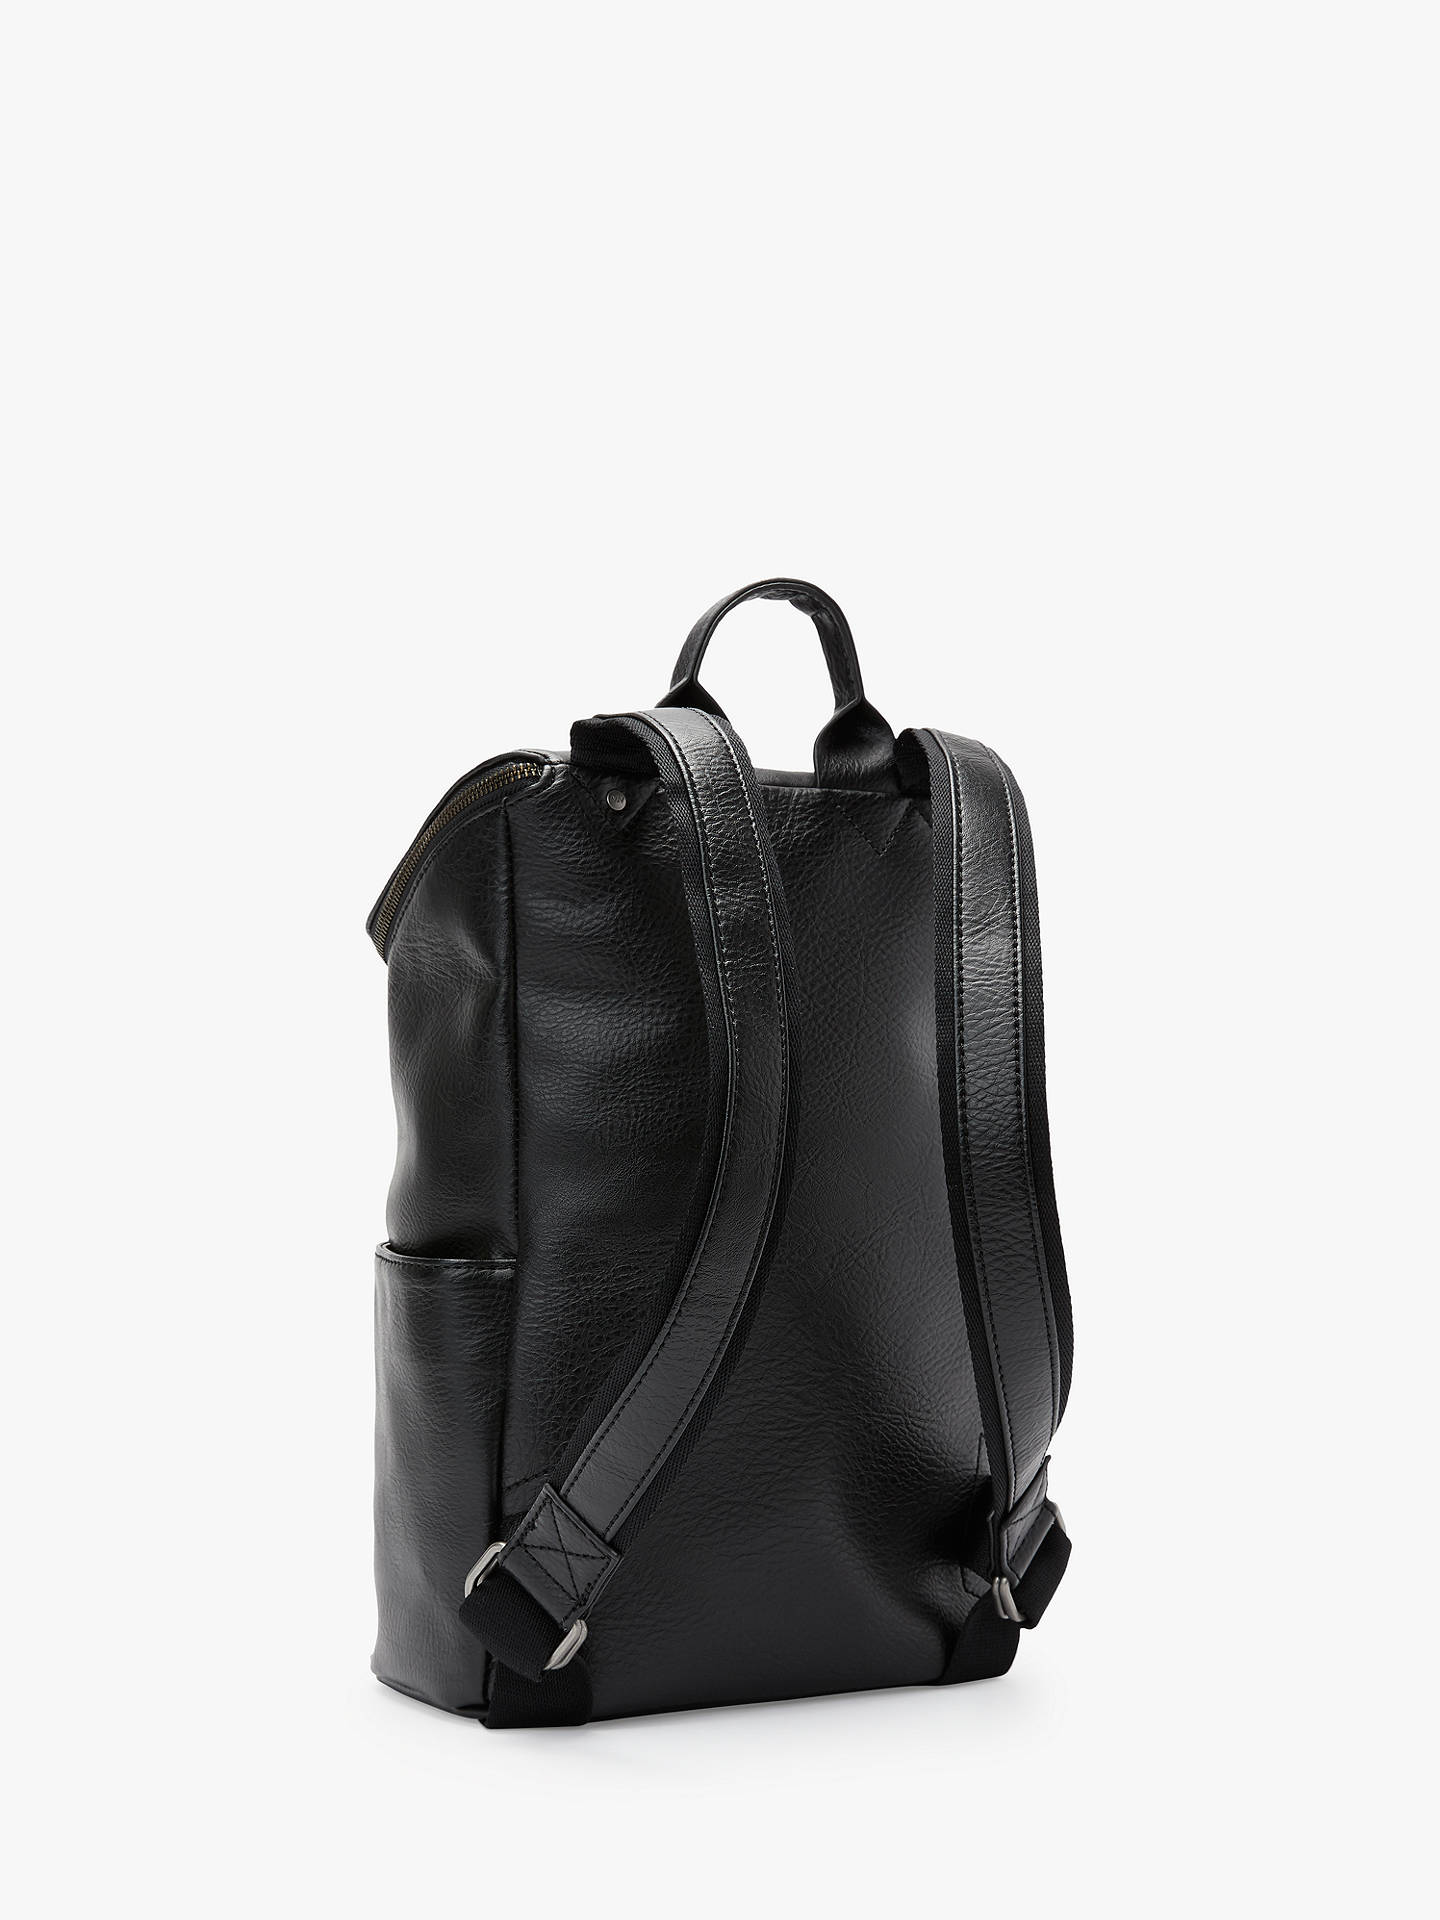 BuyMatt & Nat Dwell Collection Brave Vegan Backpack, Black Online at johnlewis.com